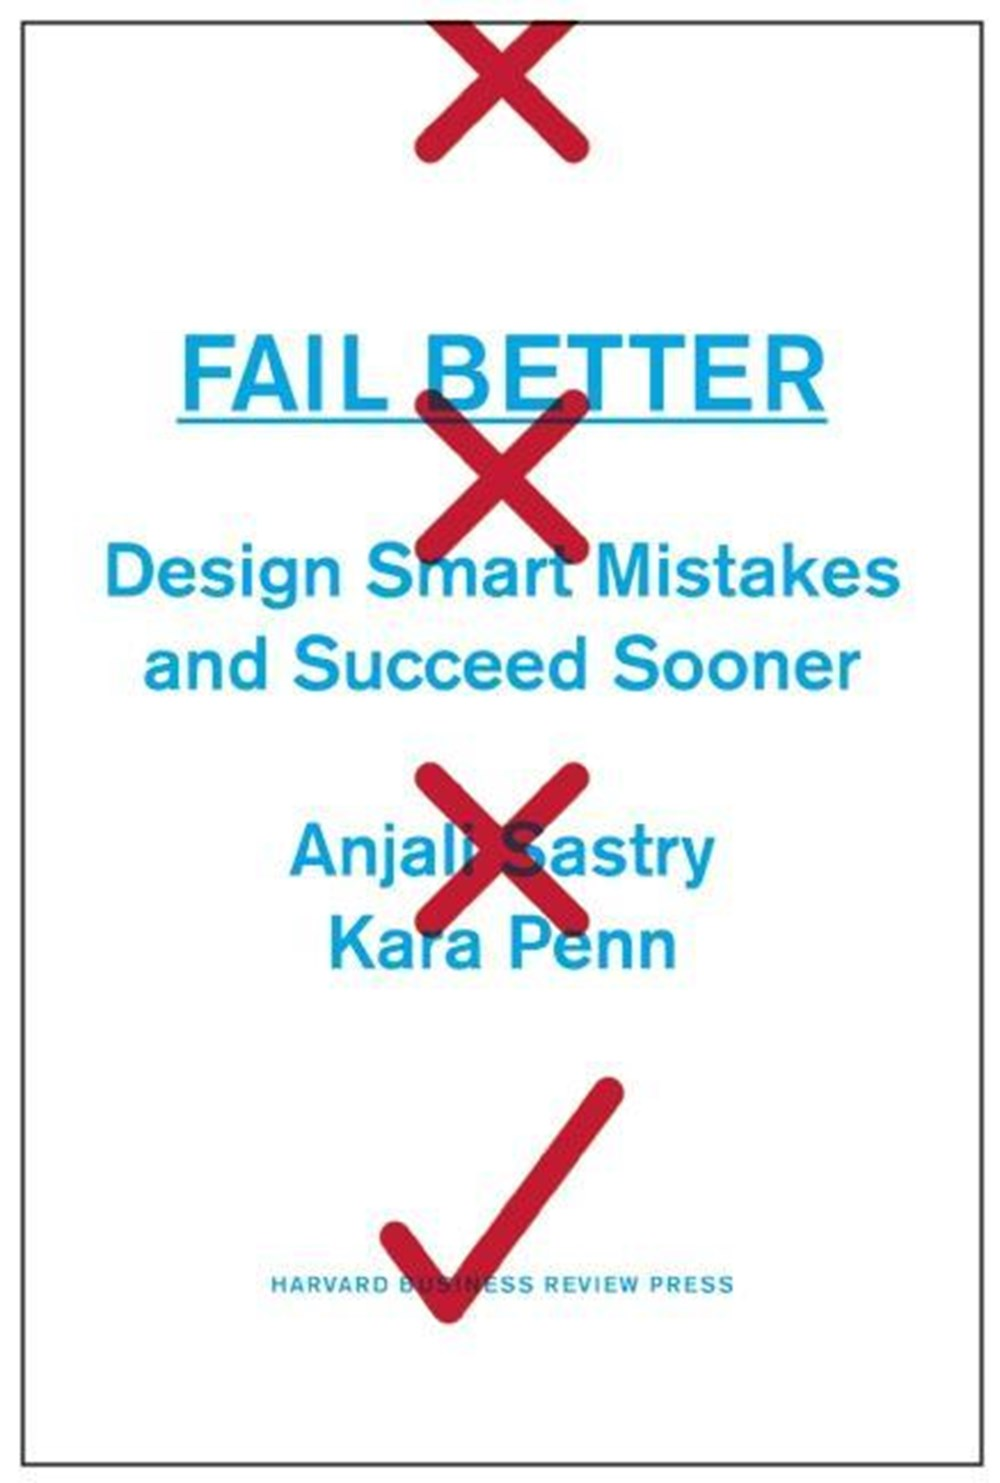 Fail Better Design Smart Mistakes and Succeed Sooner